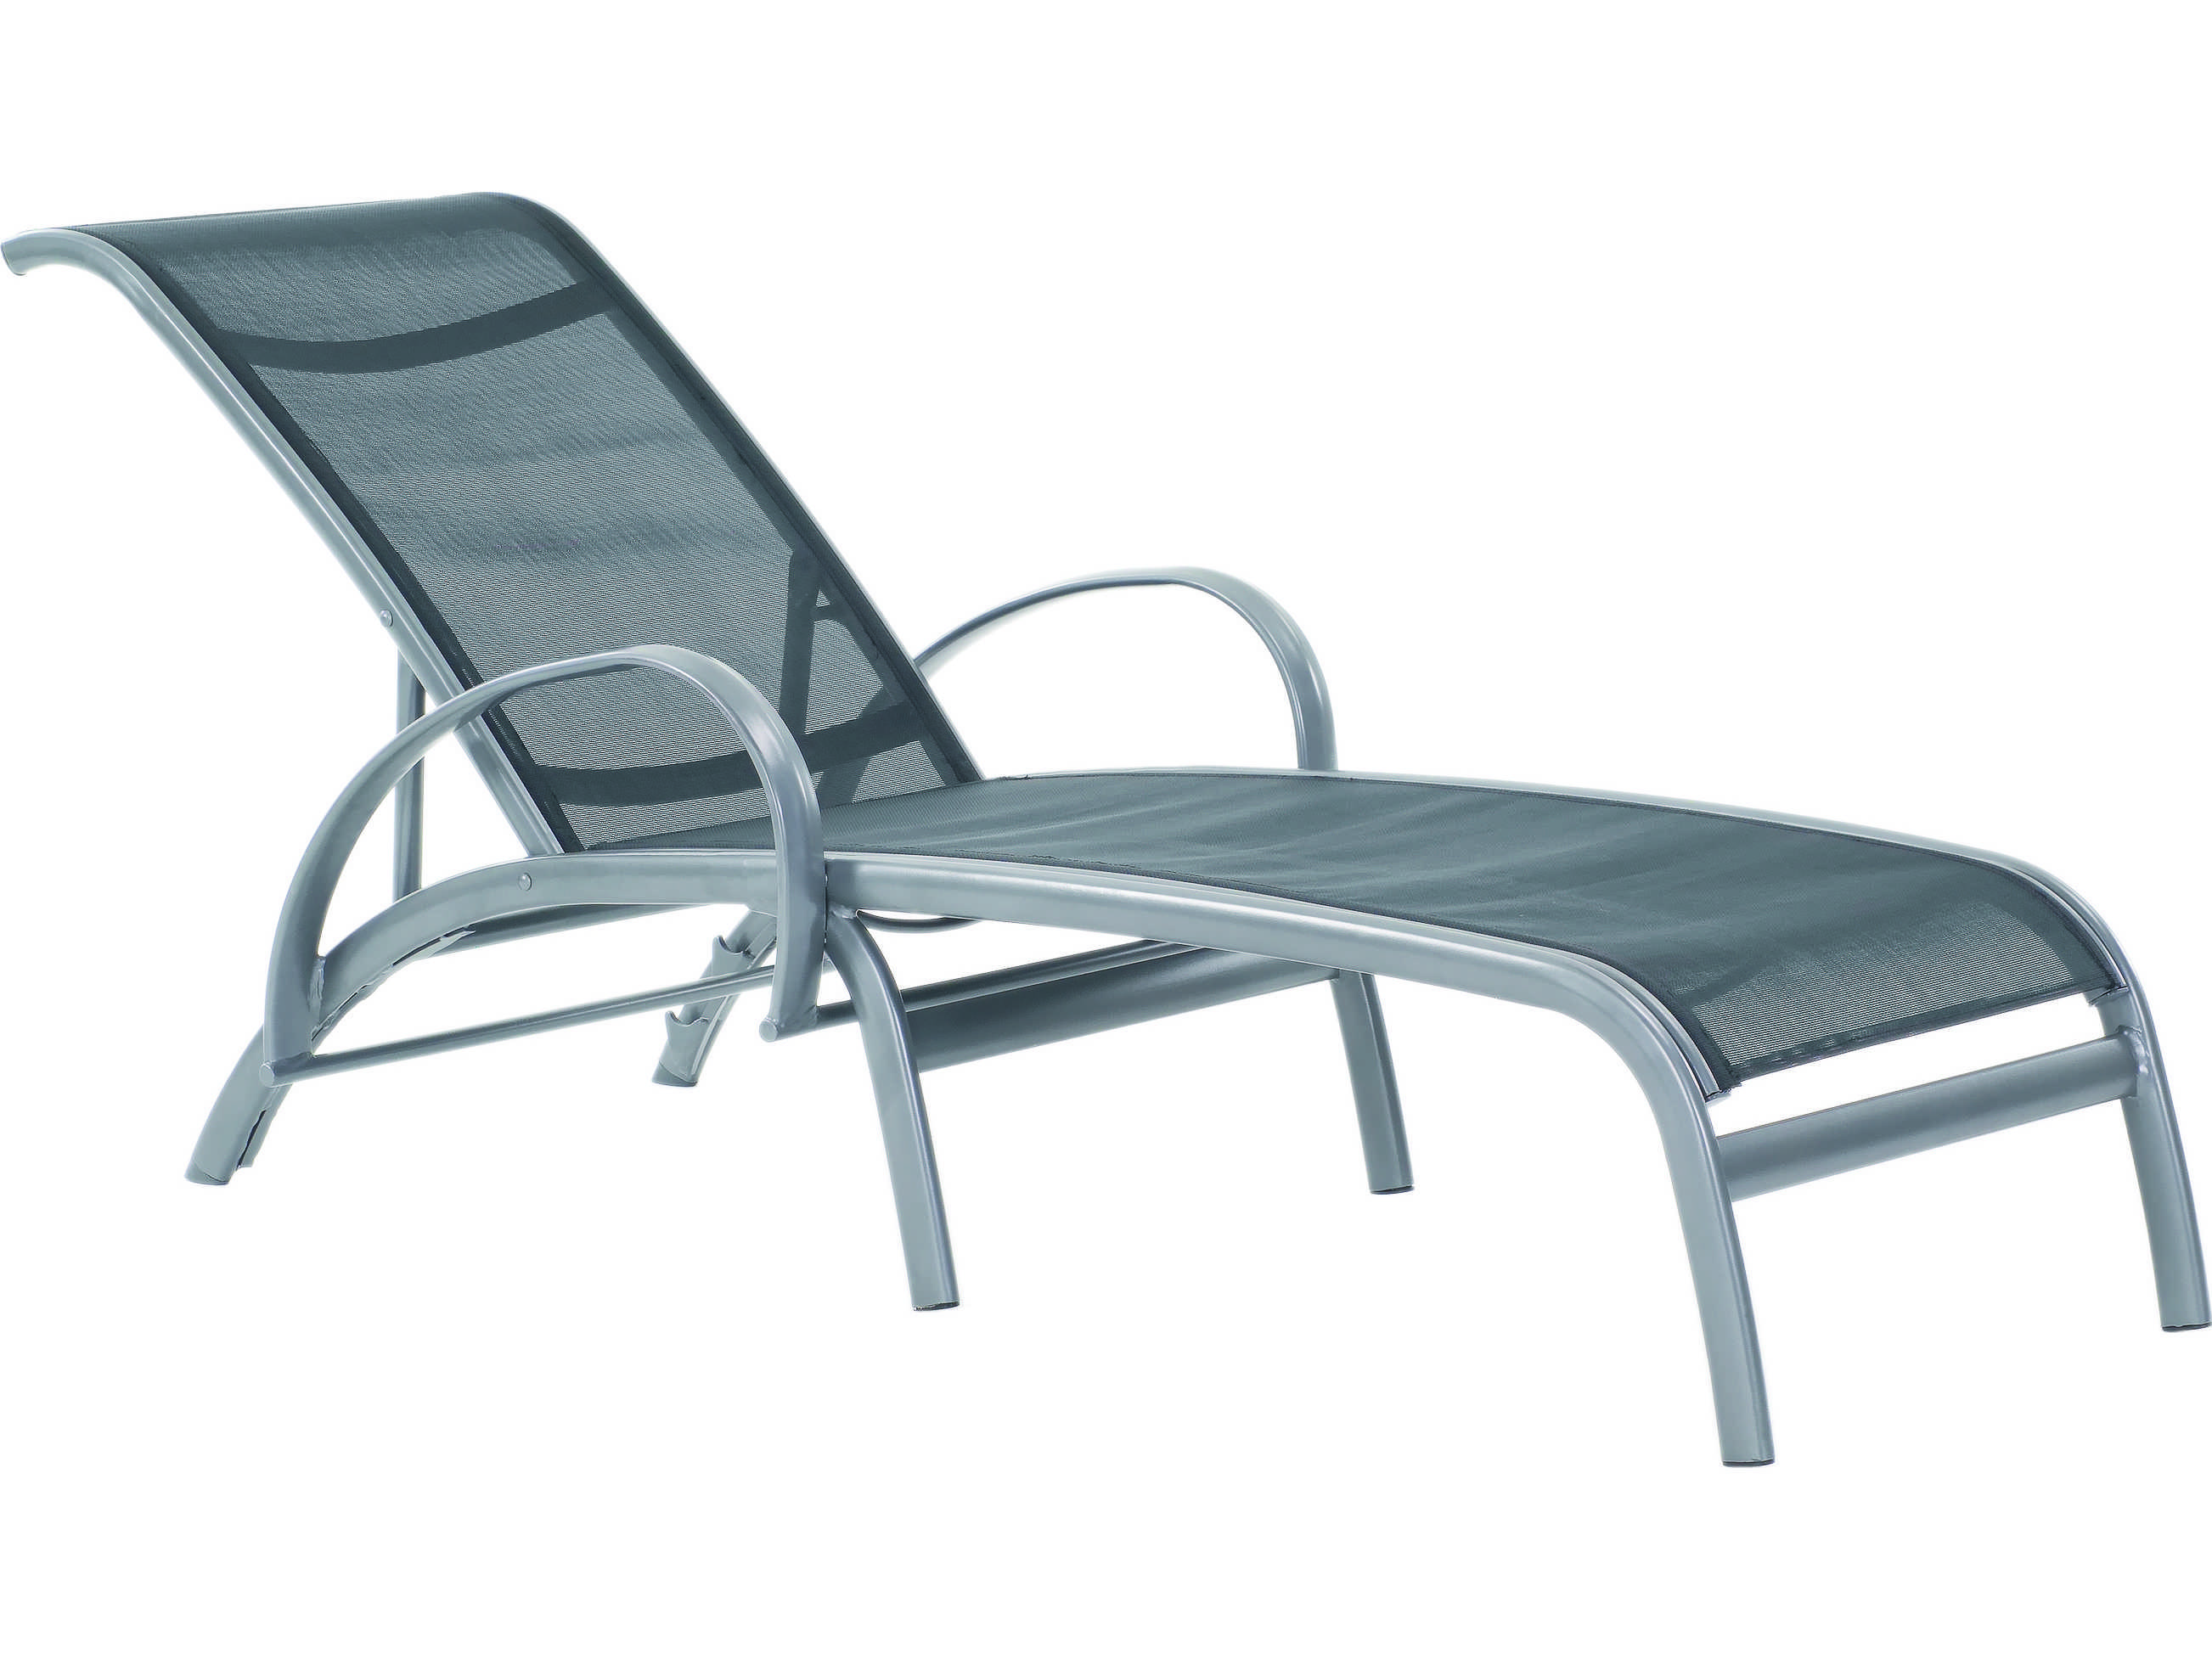 Koverton modone aluminum chaise lounge k 154 15 for Aluminum chaise lounges